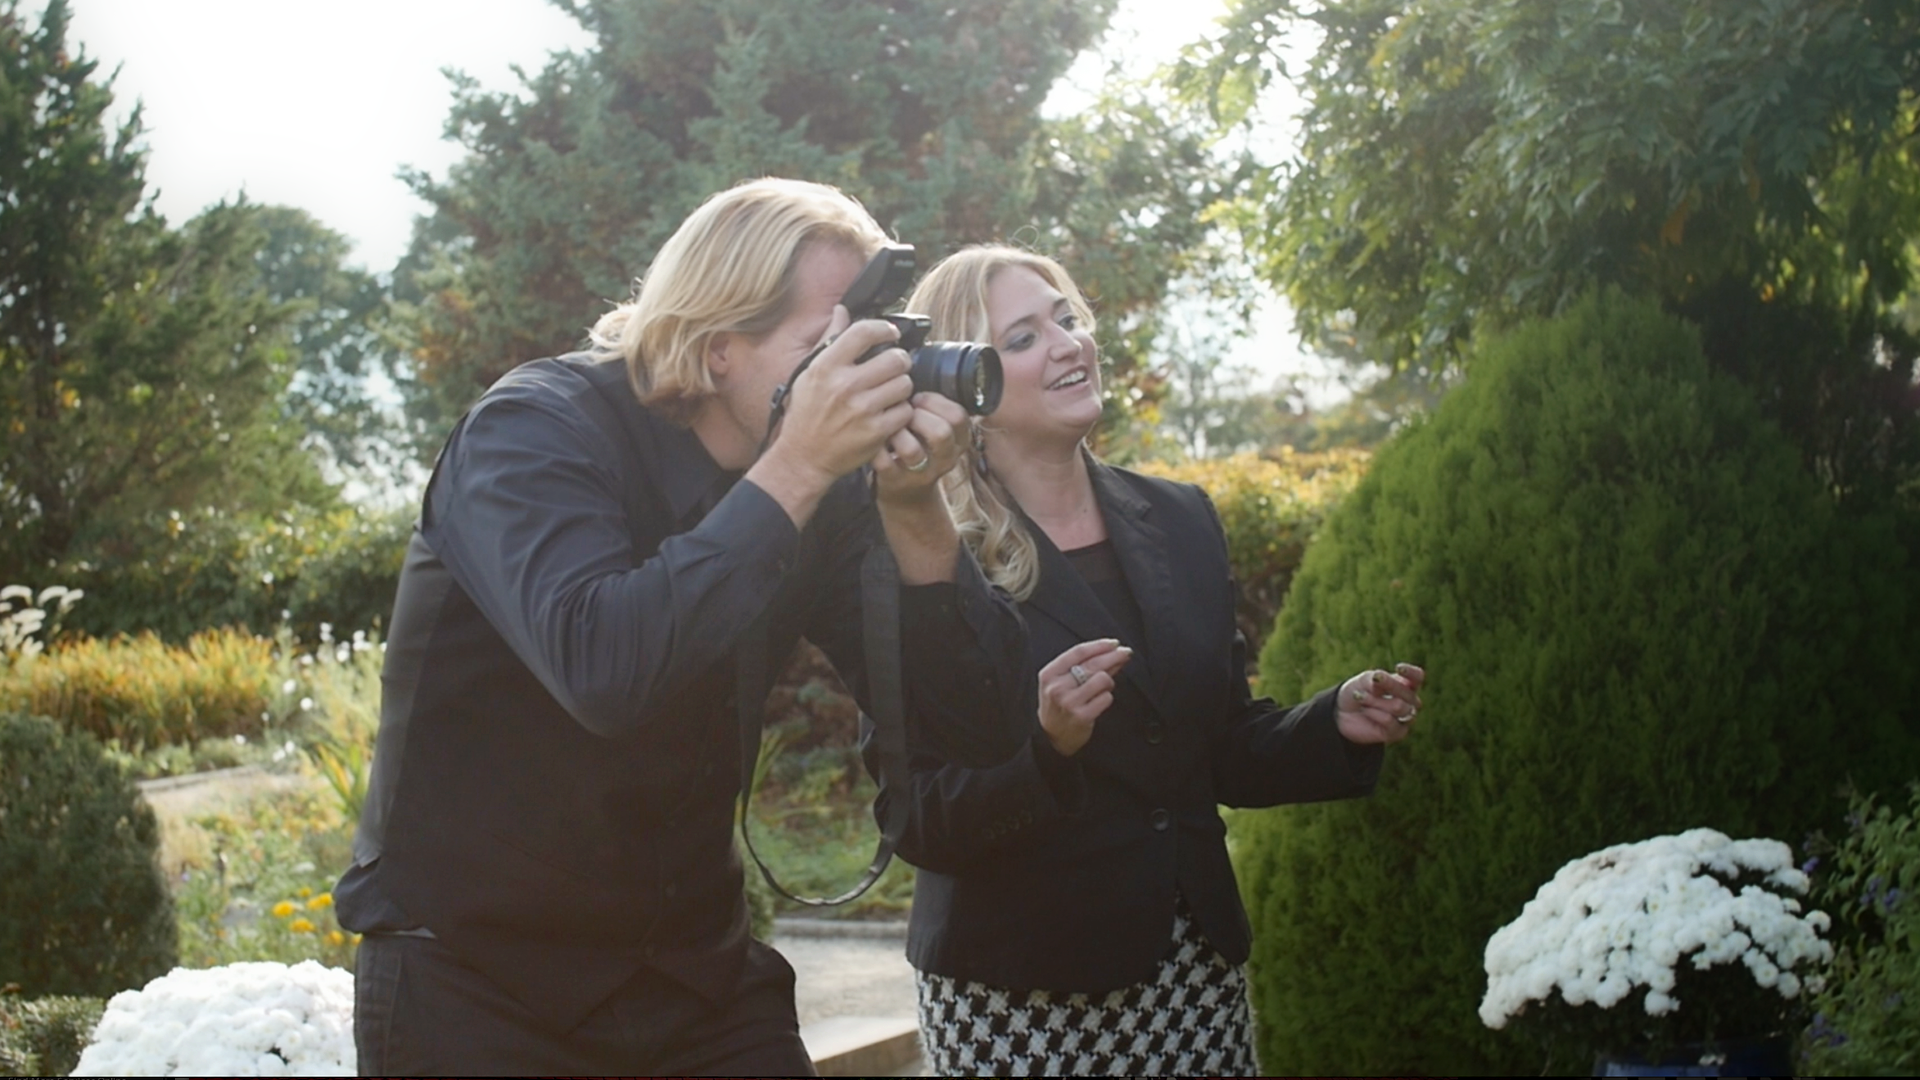 Charles & Jennifer working together to create beautiful wedding portraits of family and friends.